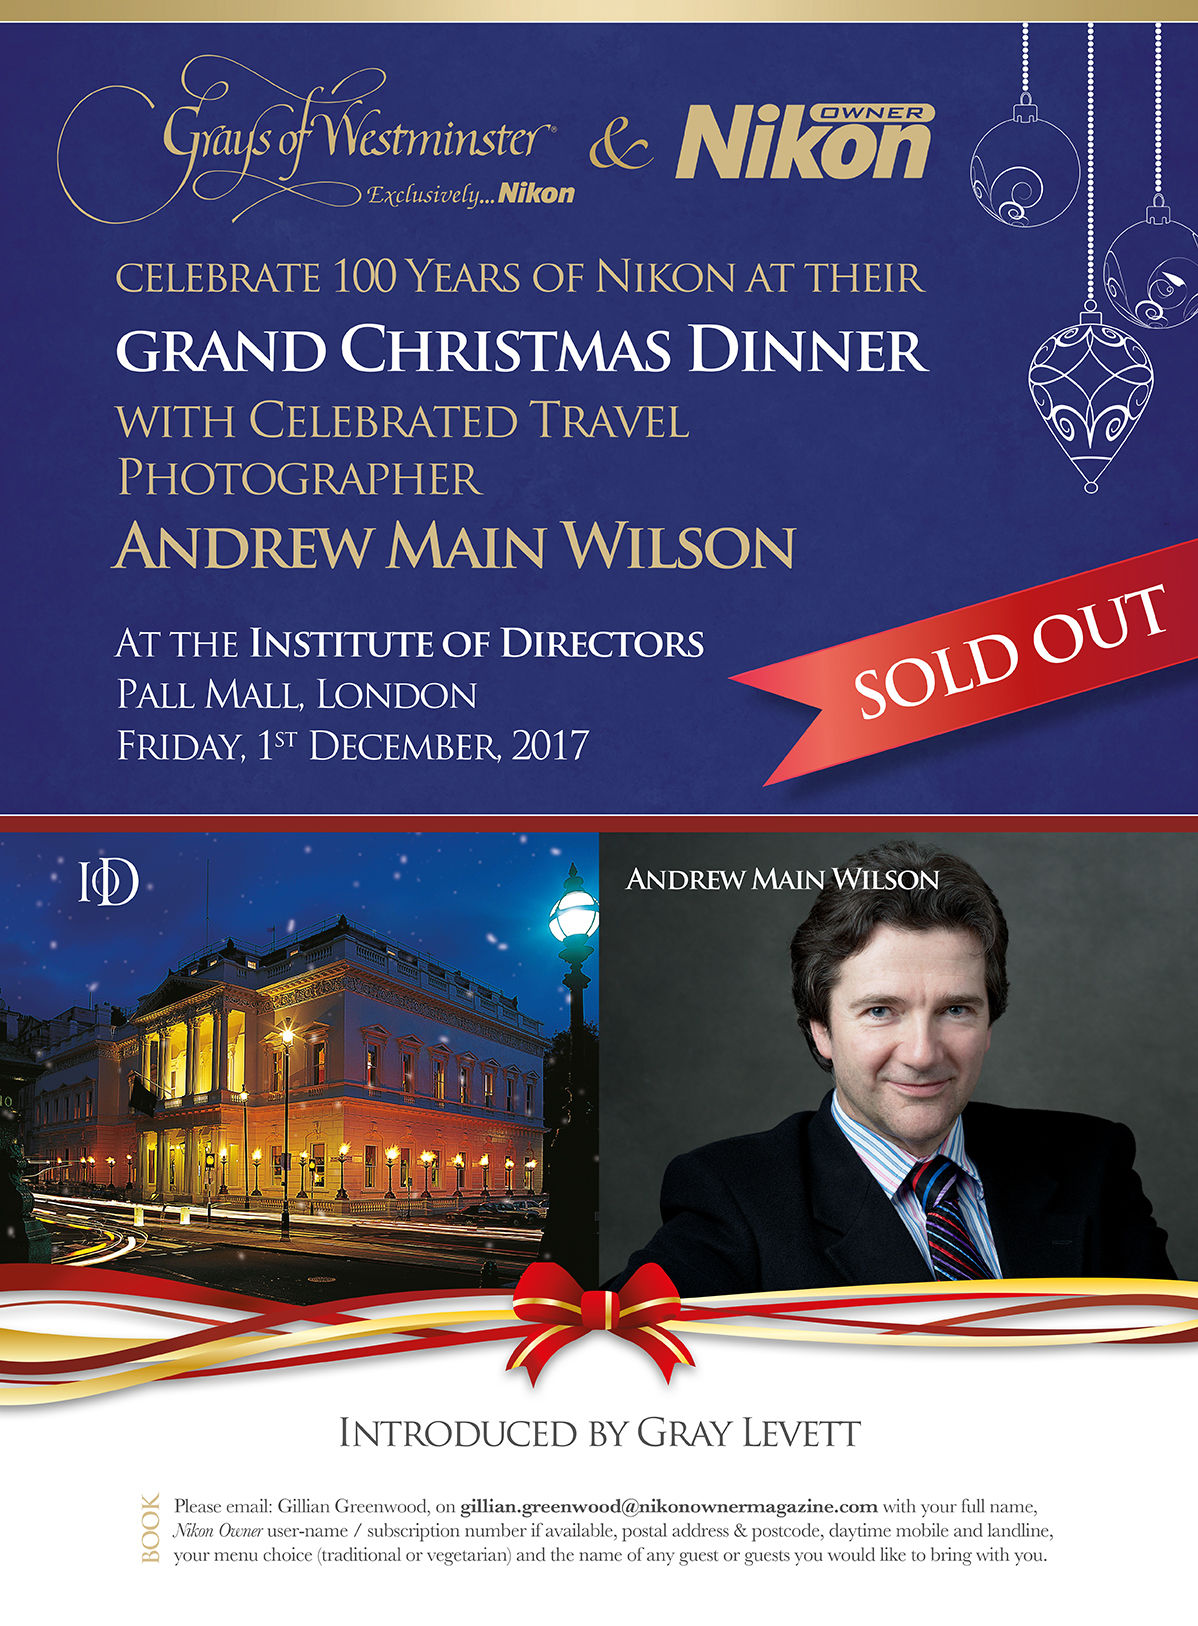 Grand Christmas Dinner with Celebrated Travel Photographer Andrew Main Wilson